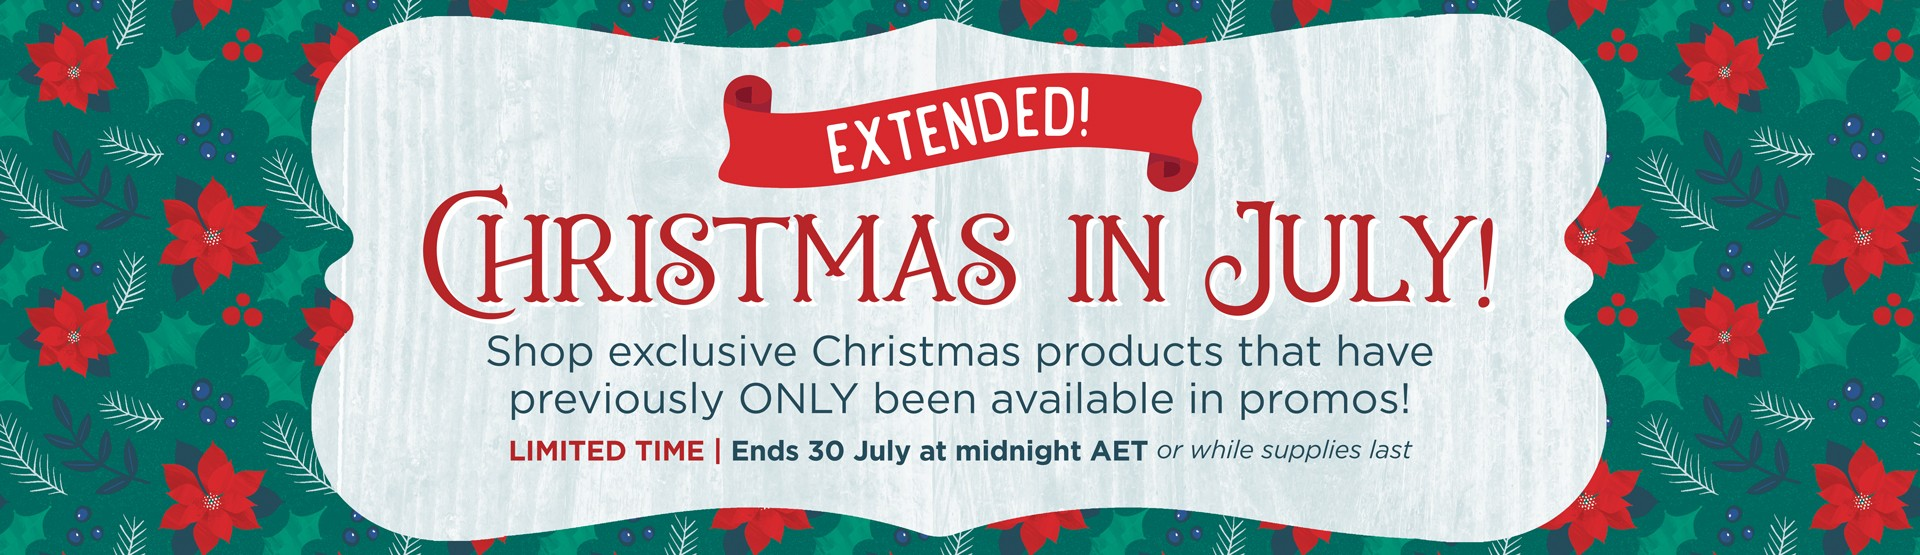 LIMITED TIME: Christmas in July